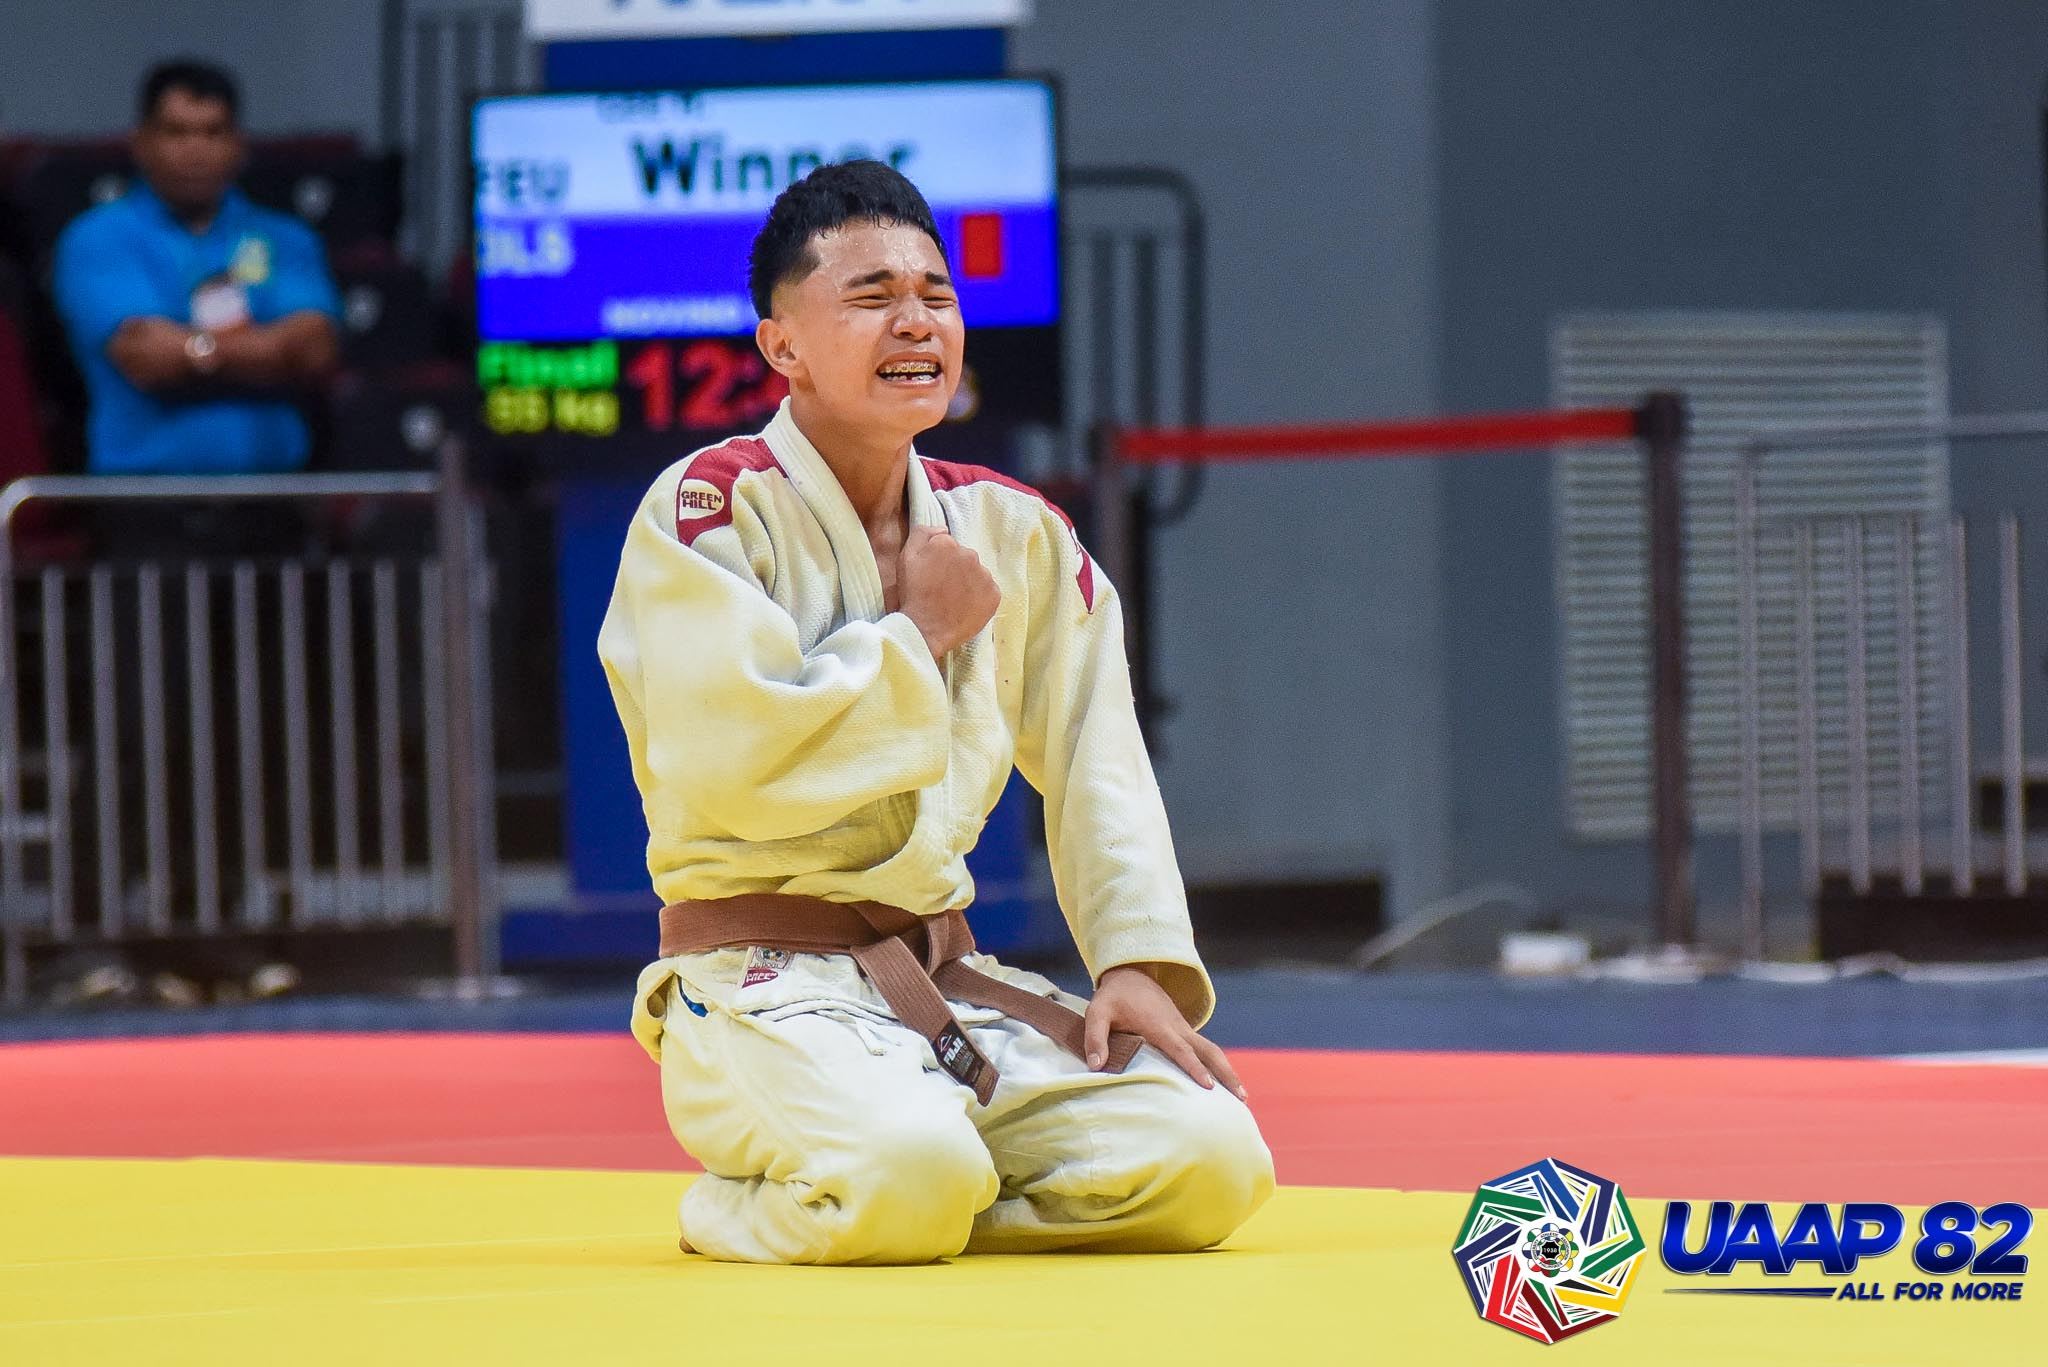 UAAP82-JUDO-JRS-60KG-BOYS-4TH-PHOTO-WHITE-LEE-FEU Donaire, Saria lead DLSZ to surprising start in UAAP 82 HS Judo as Quimba sisters give UST early lead ADMU DLSU FEU Judo News UAAP UE UST  - philippine sports news